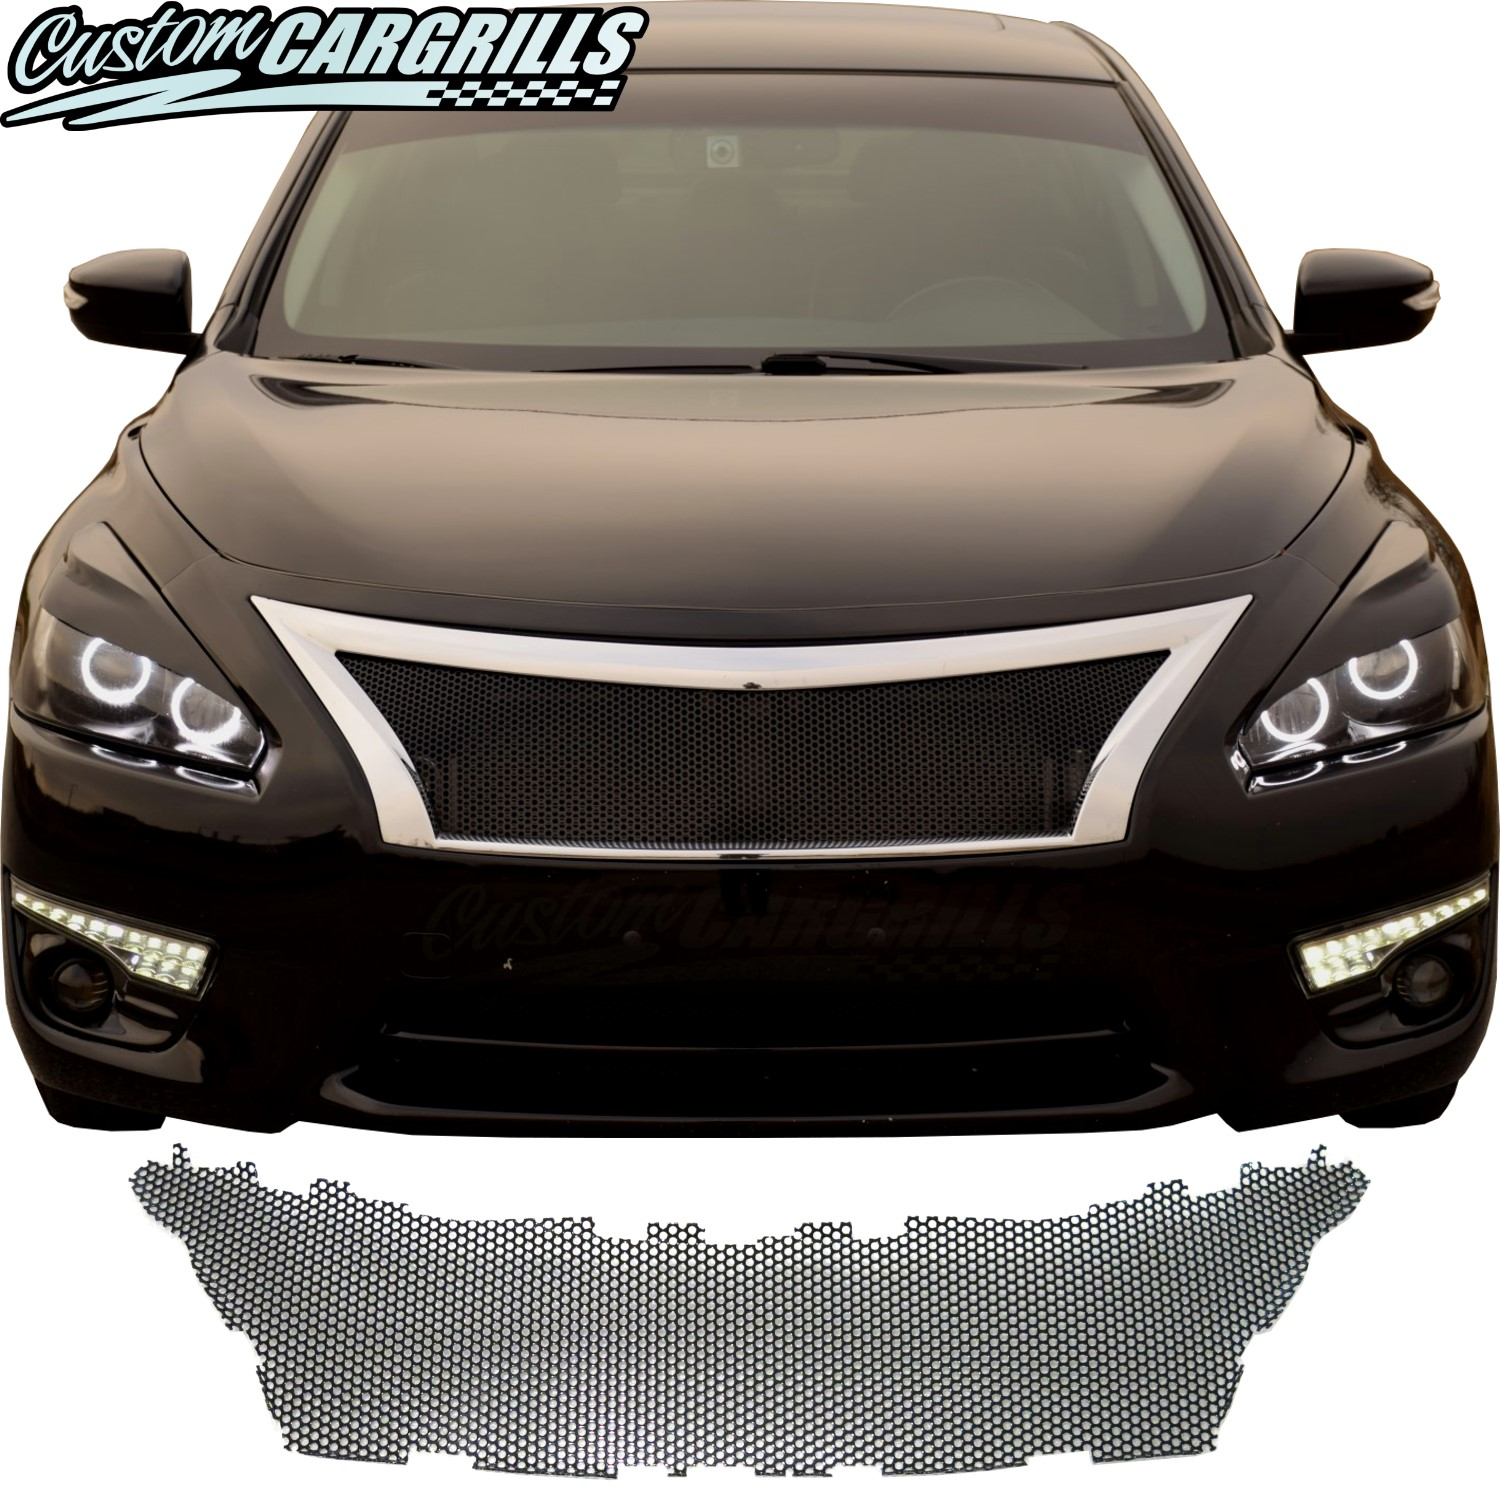 2013 - 2015 Nissan Altima Mesh Grill Piece